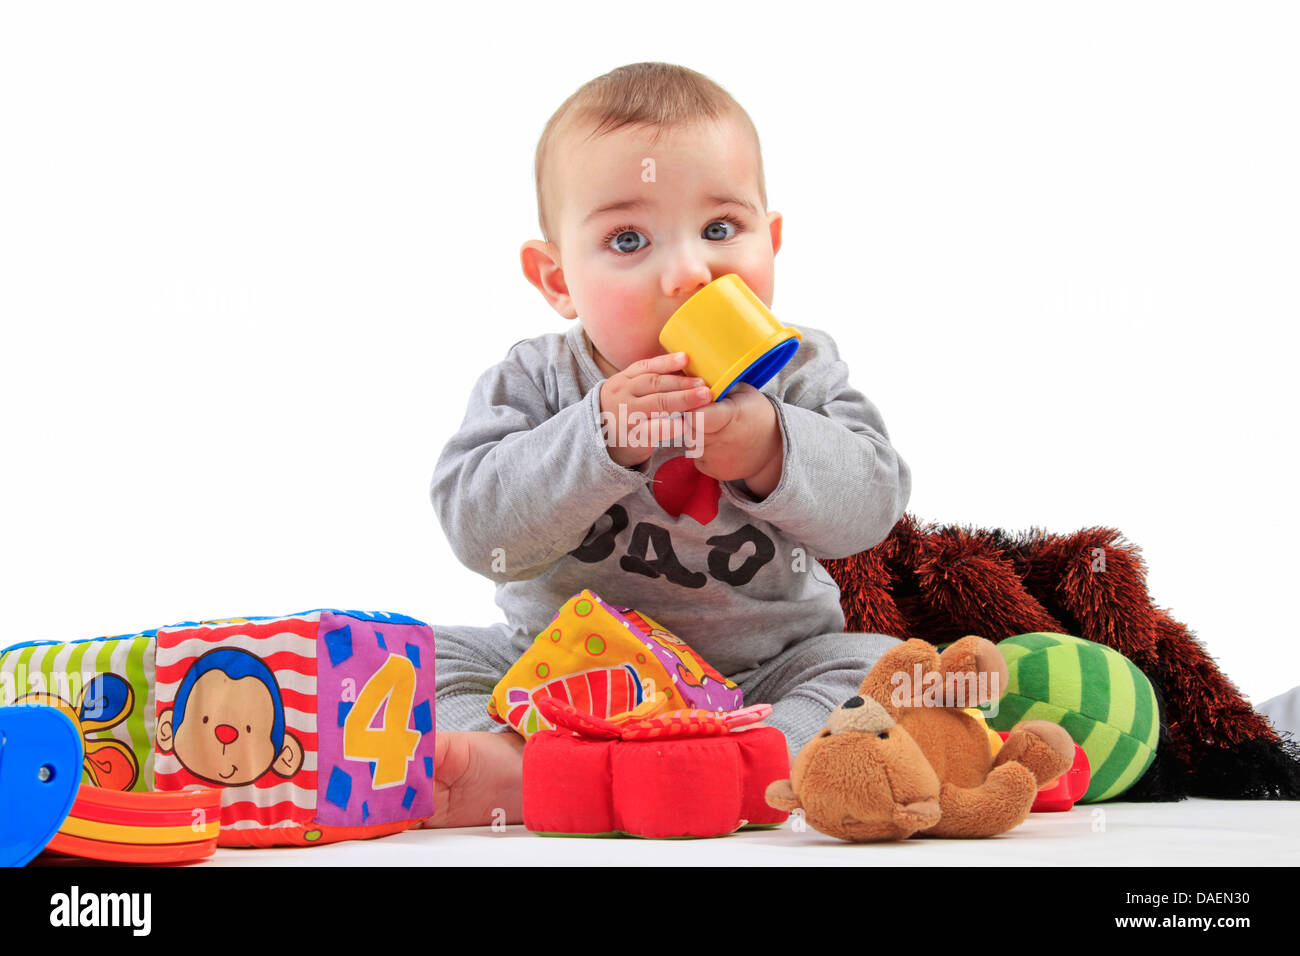 sitting baby playing lively with playthings - Stock Image